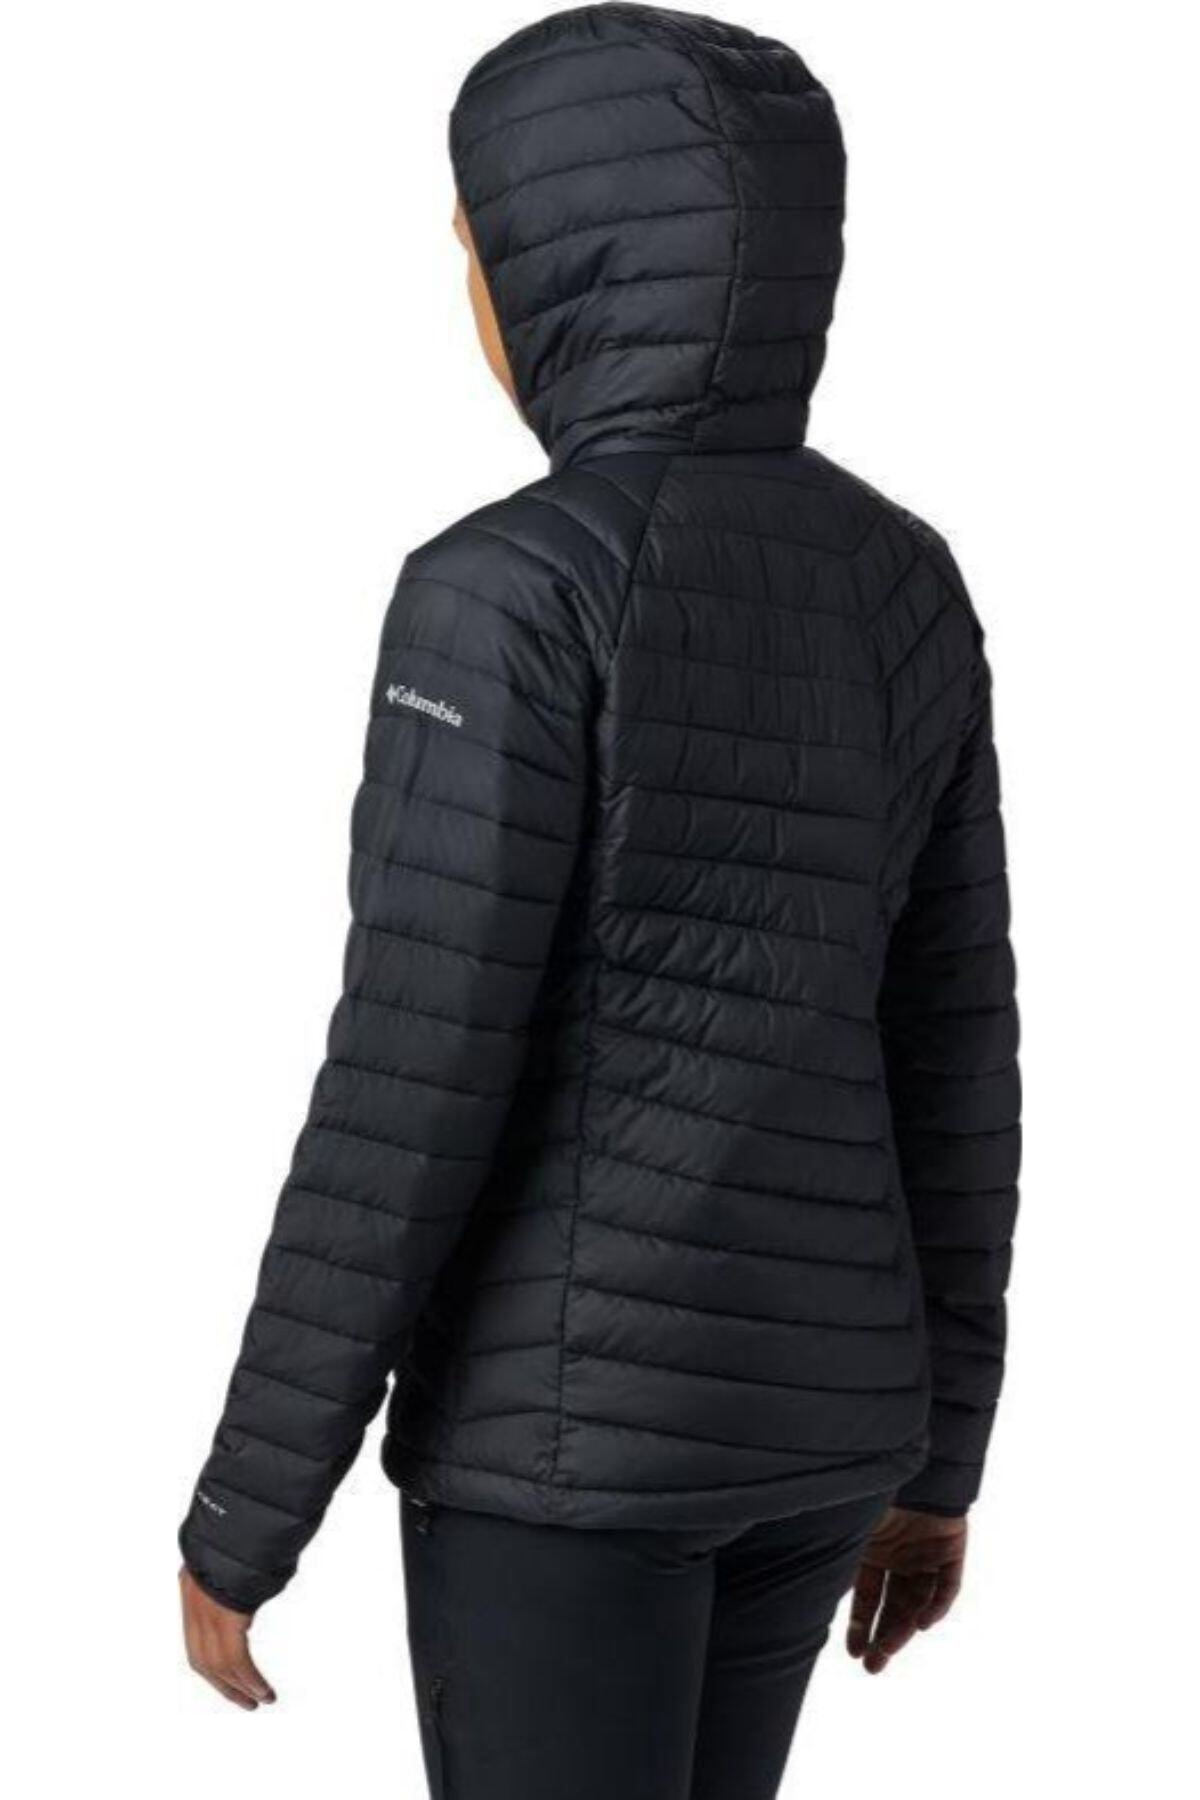 Columbia WK1499-011 Powder Lite Hooded Jacket Kadın Mont 2